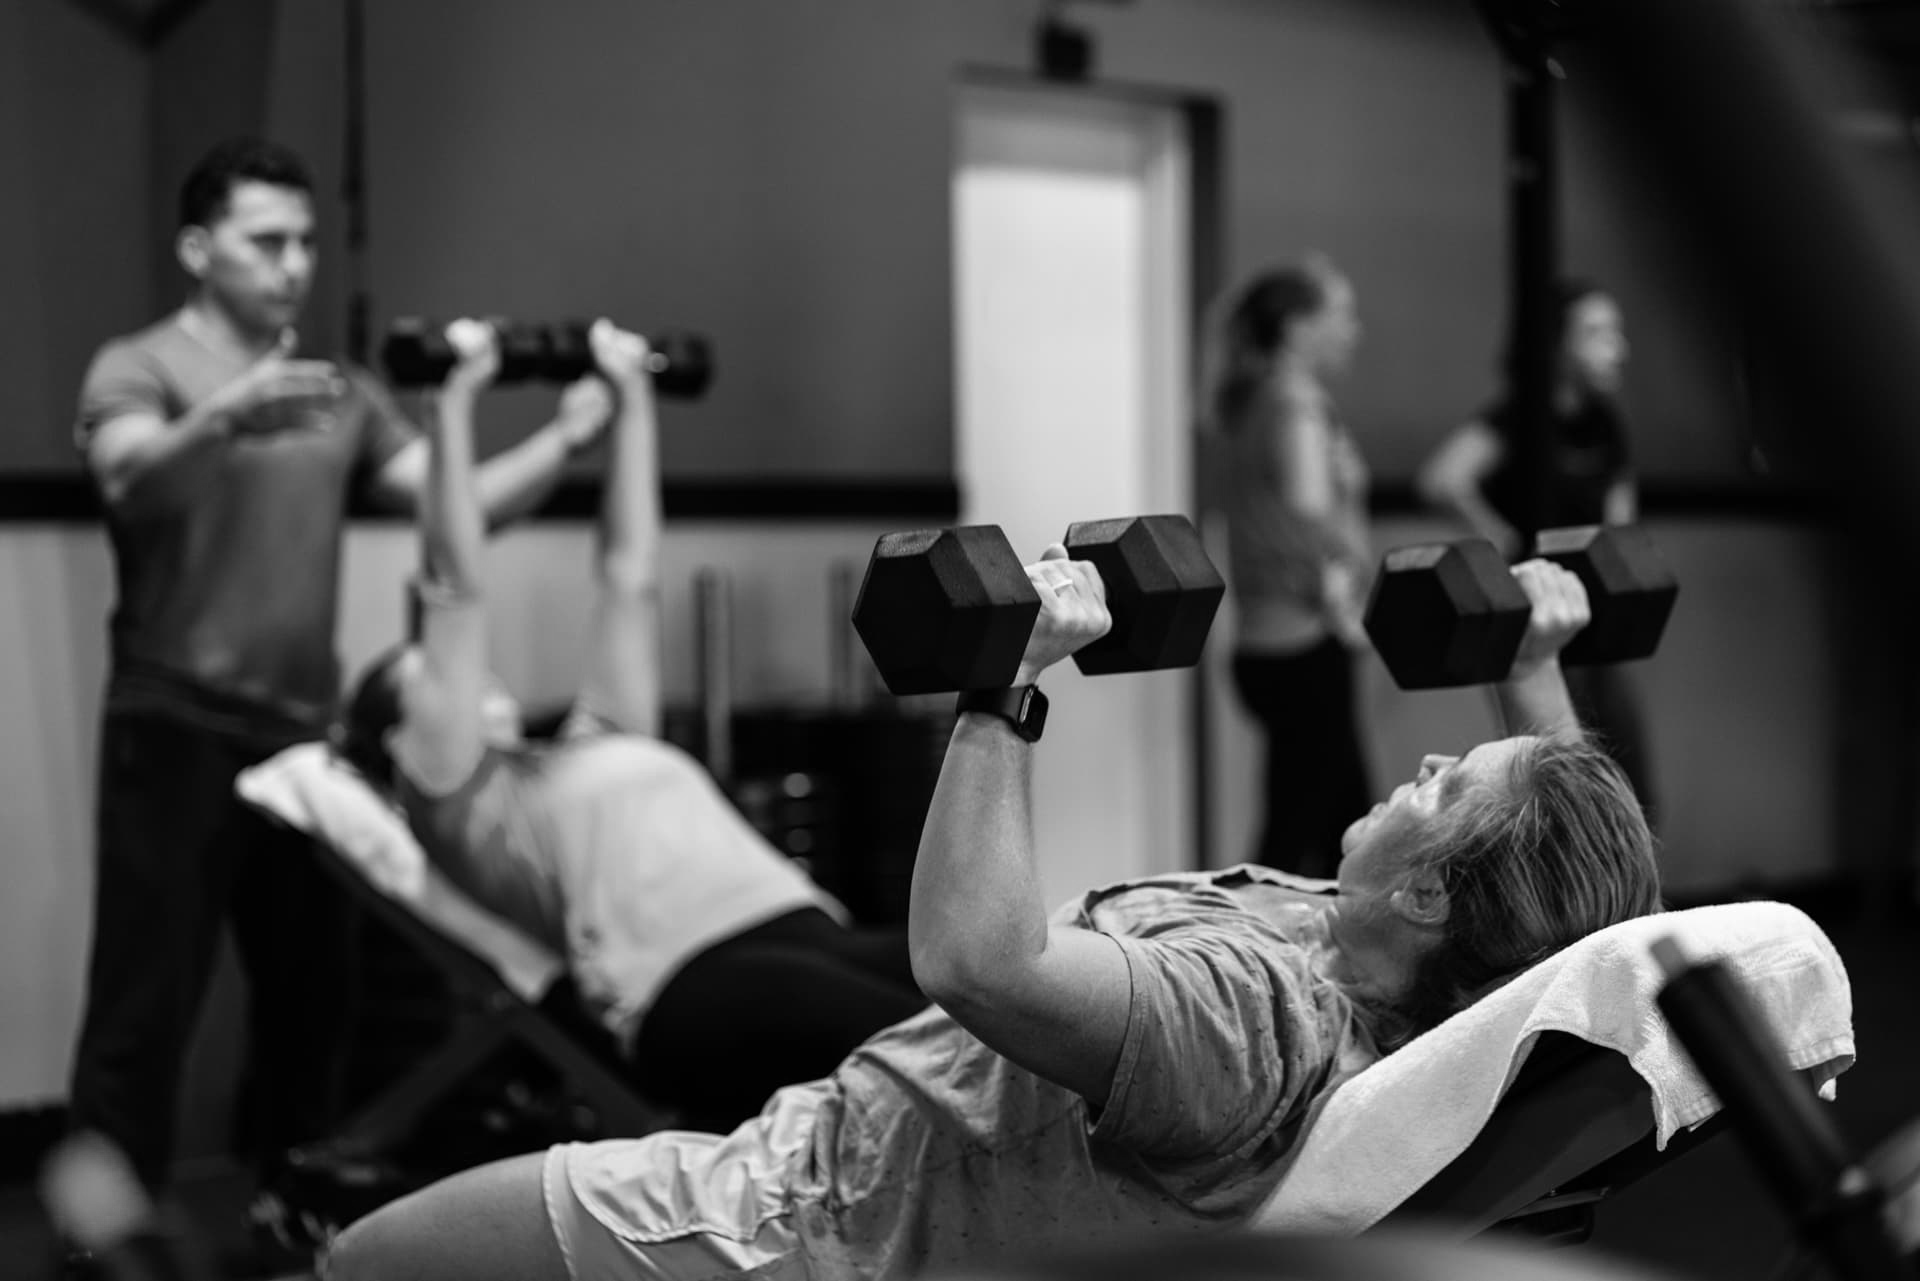 Looking for a gym?  Axis Fitness offers Group Training, Personal Training, and Open Gym options for weight loss, athletic performance, and injury prevention.